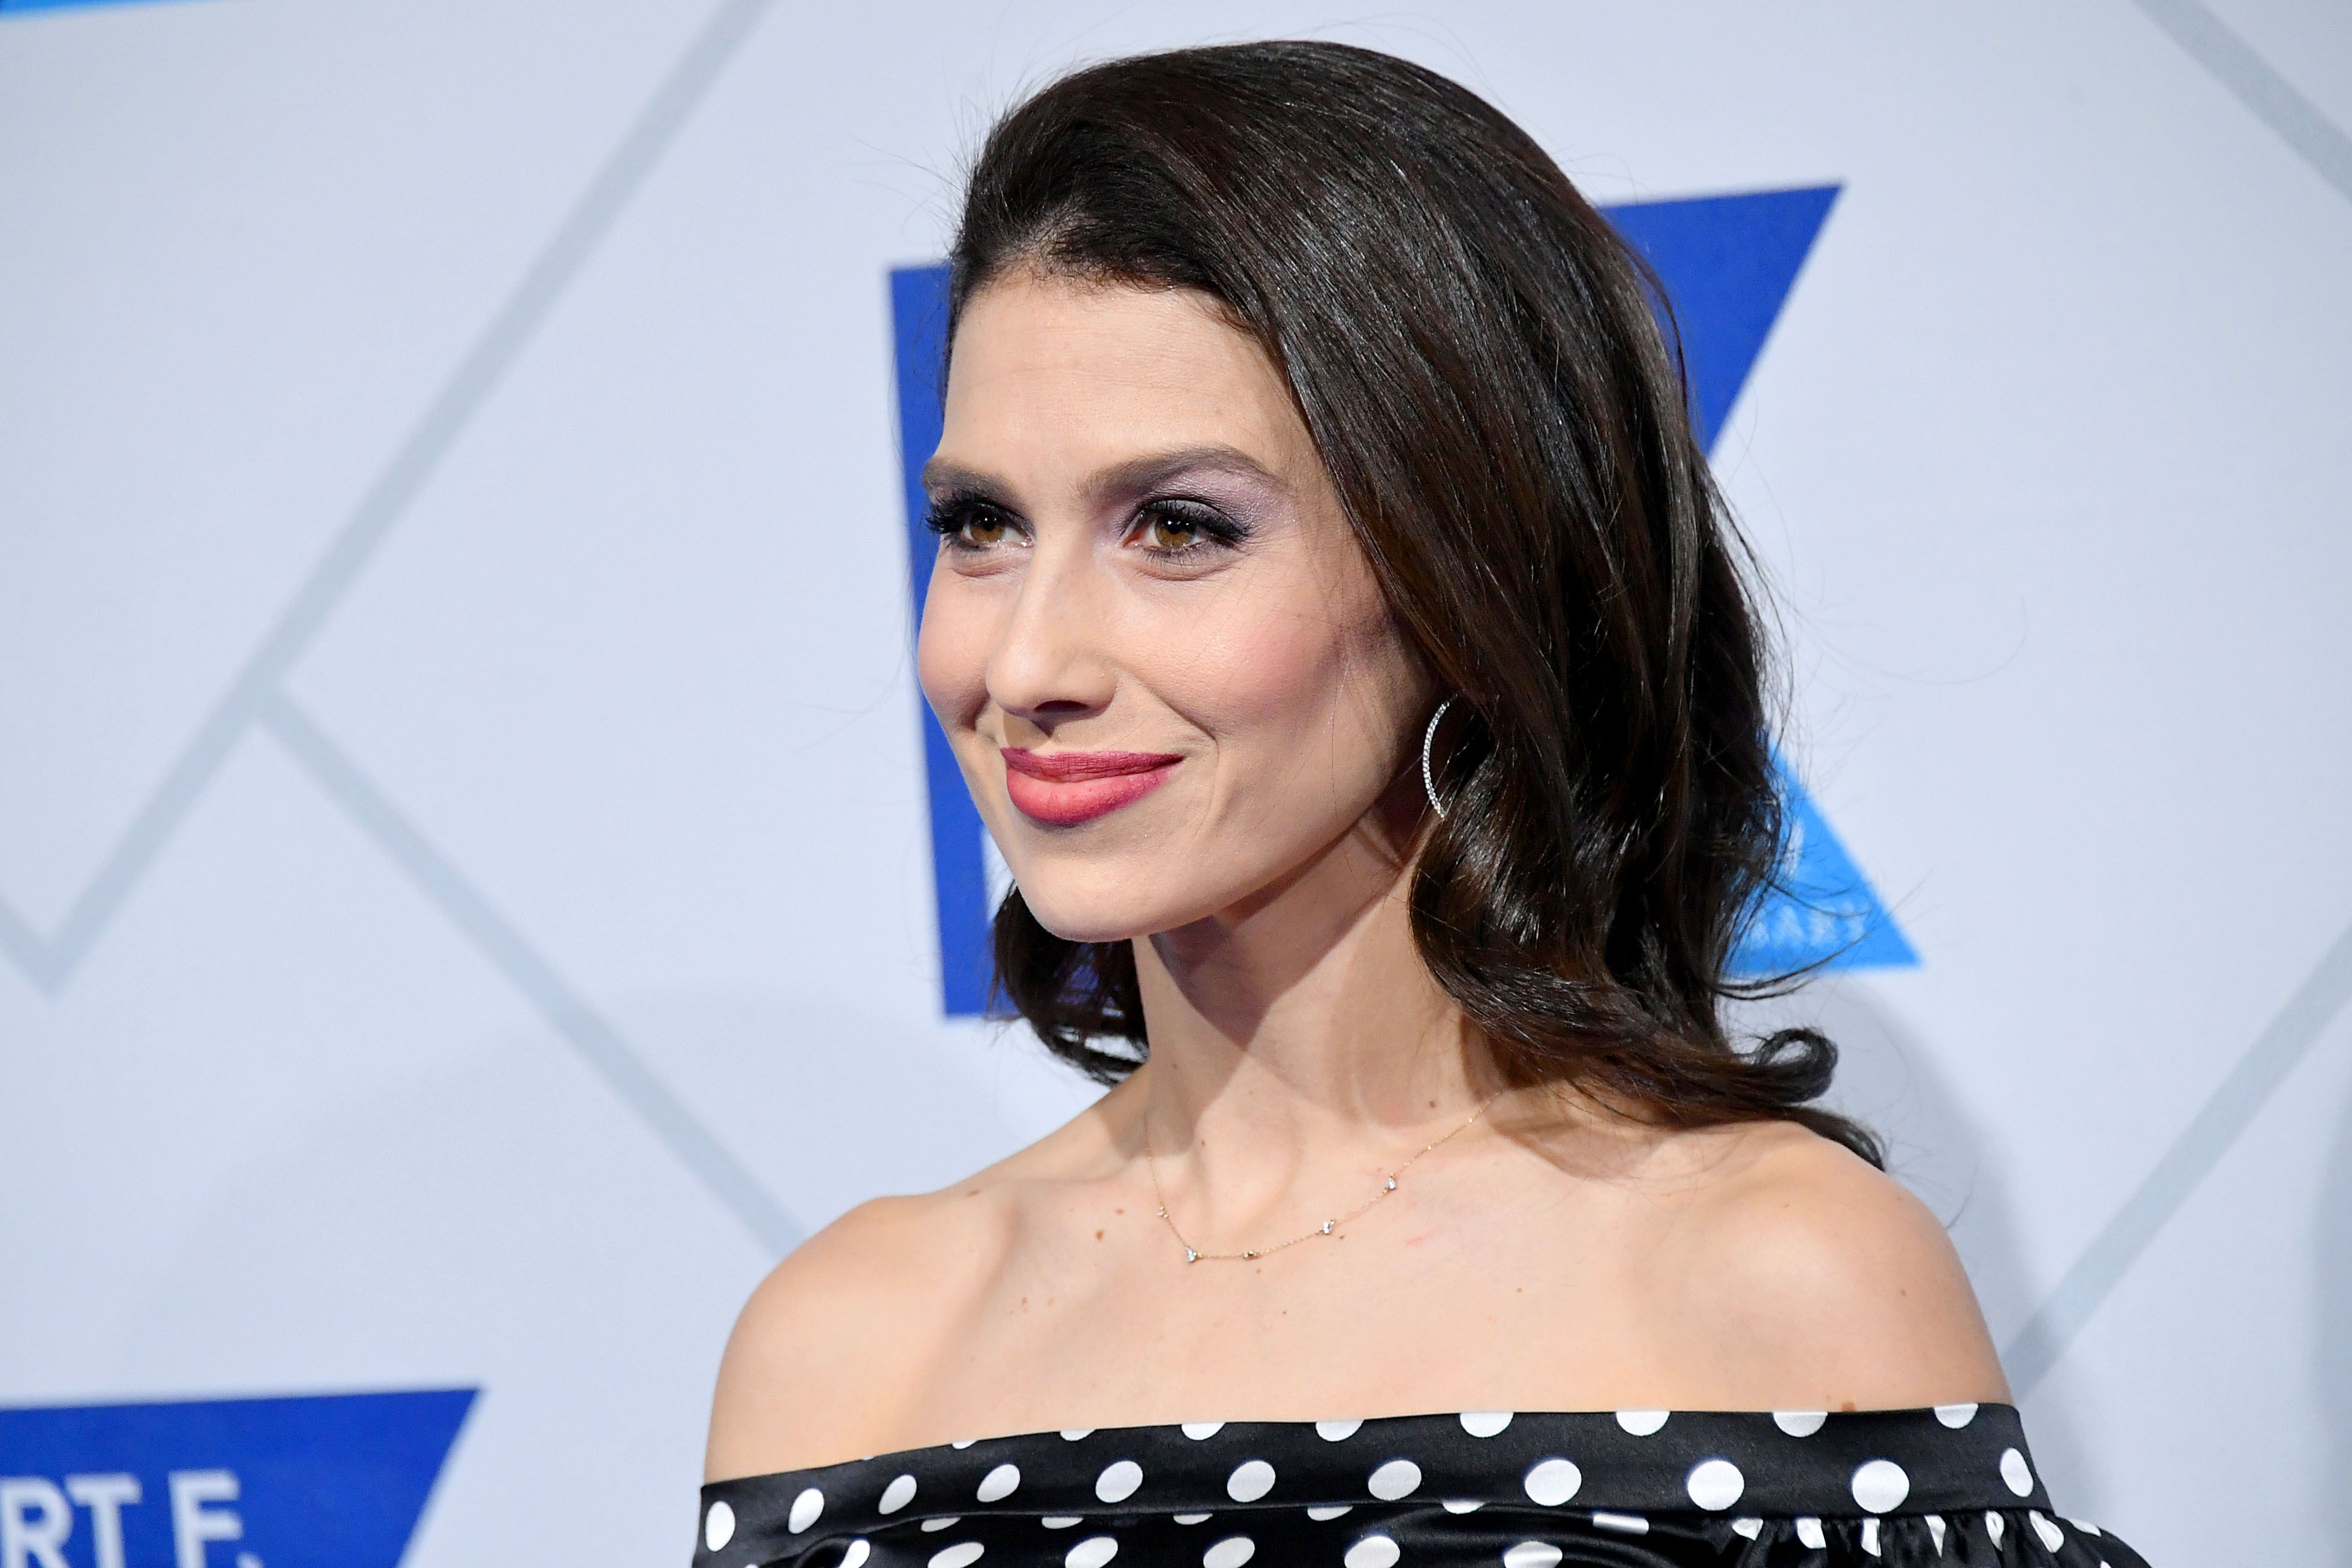 Hilaria Baldwin at the 2018 Robert F. Kennedy Human Rights' Ripple Of Hope Awards at New York Hilton Midtown on December 12, 2018 | Photo: Getty Images